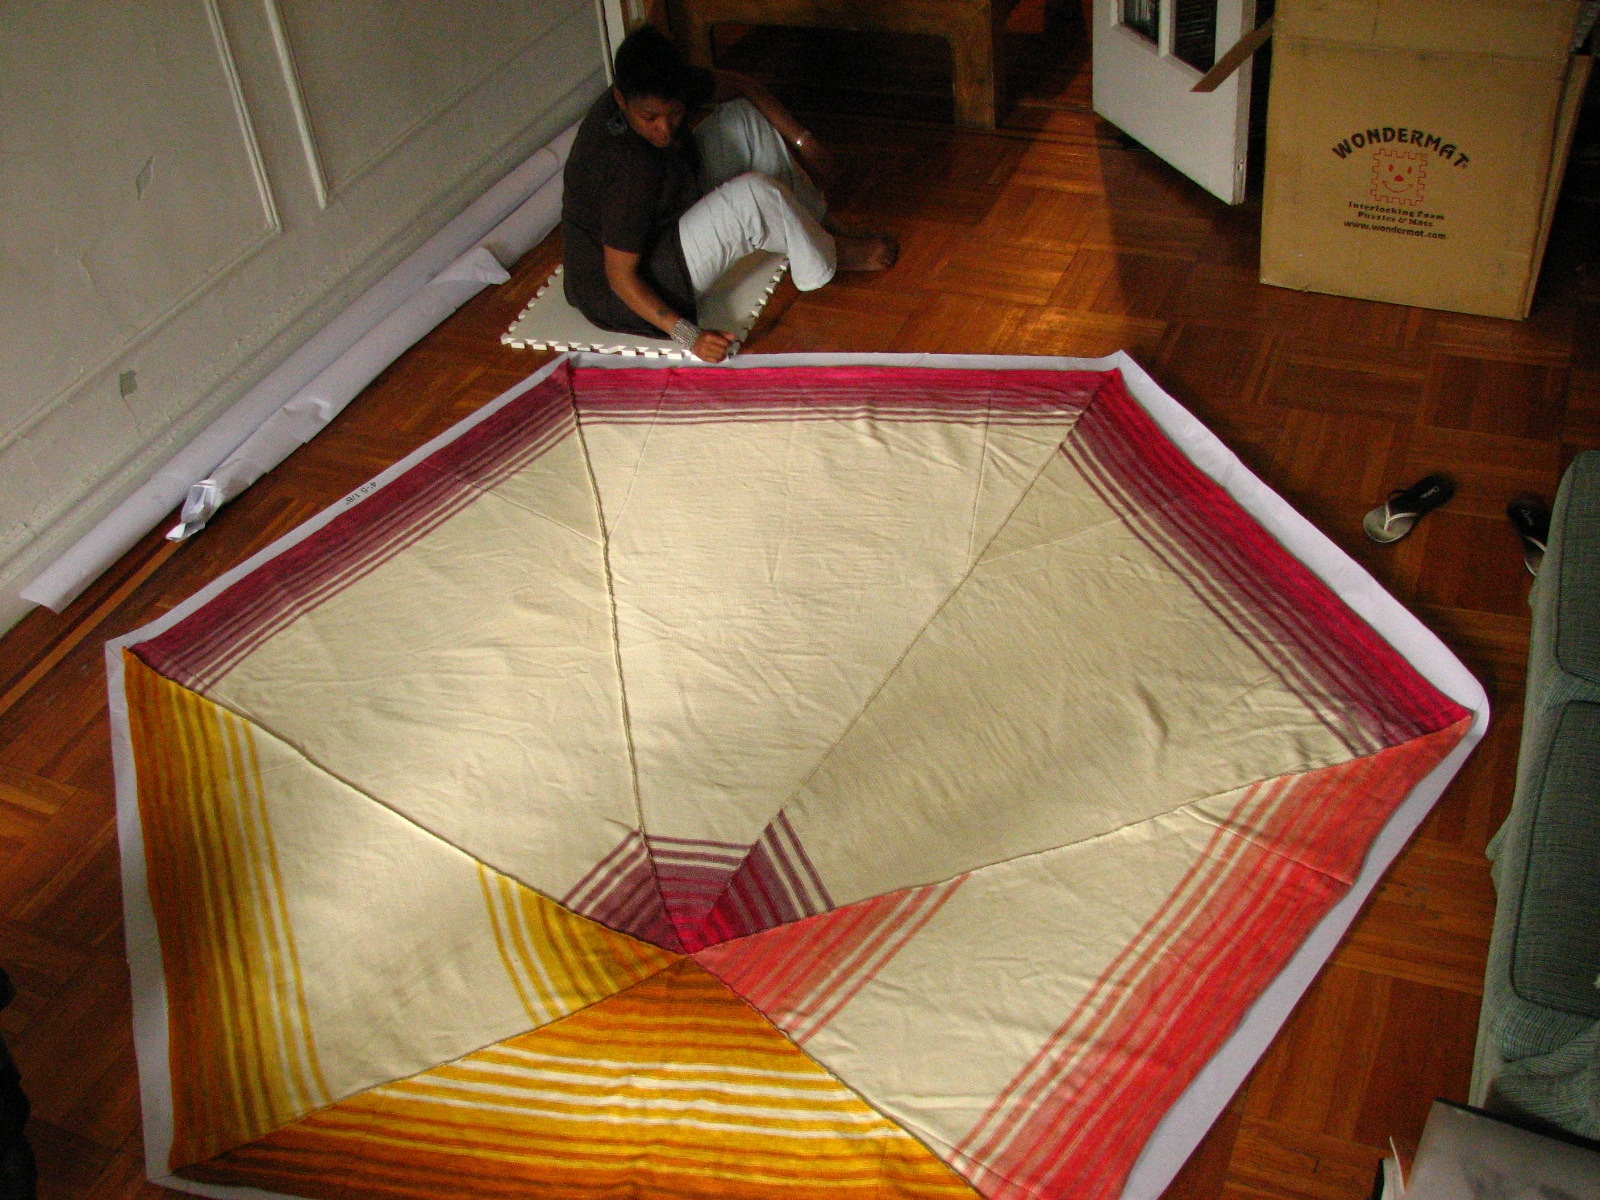 Hexagon #3 before final pressing, with Nicole sitting to show scale.